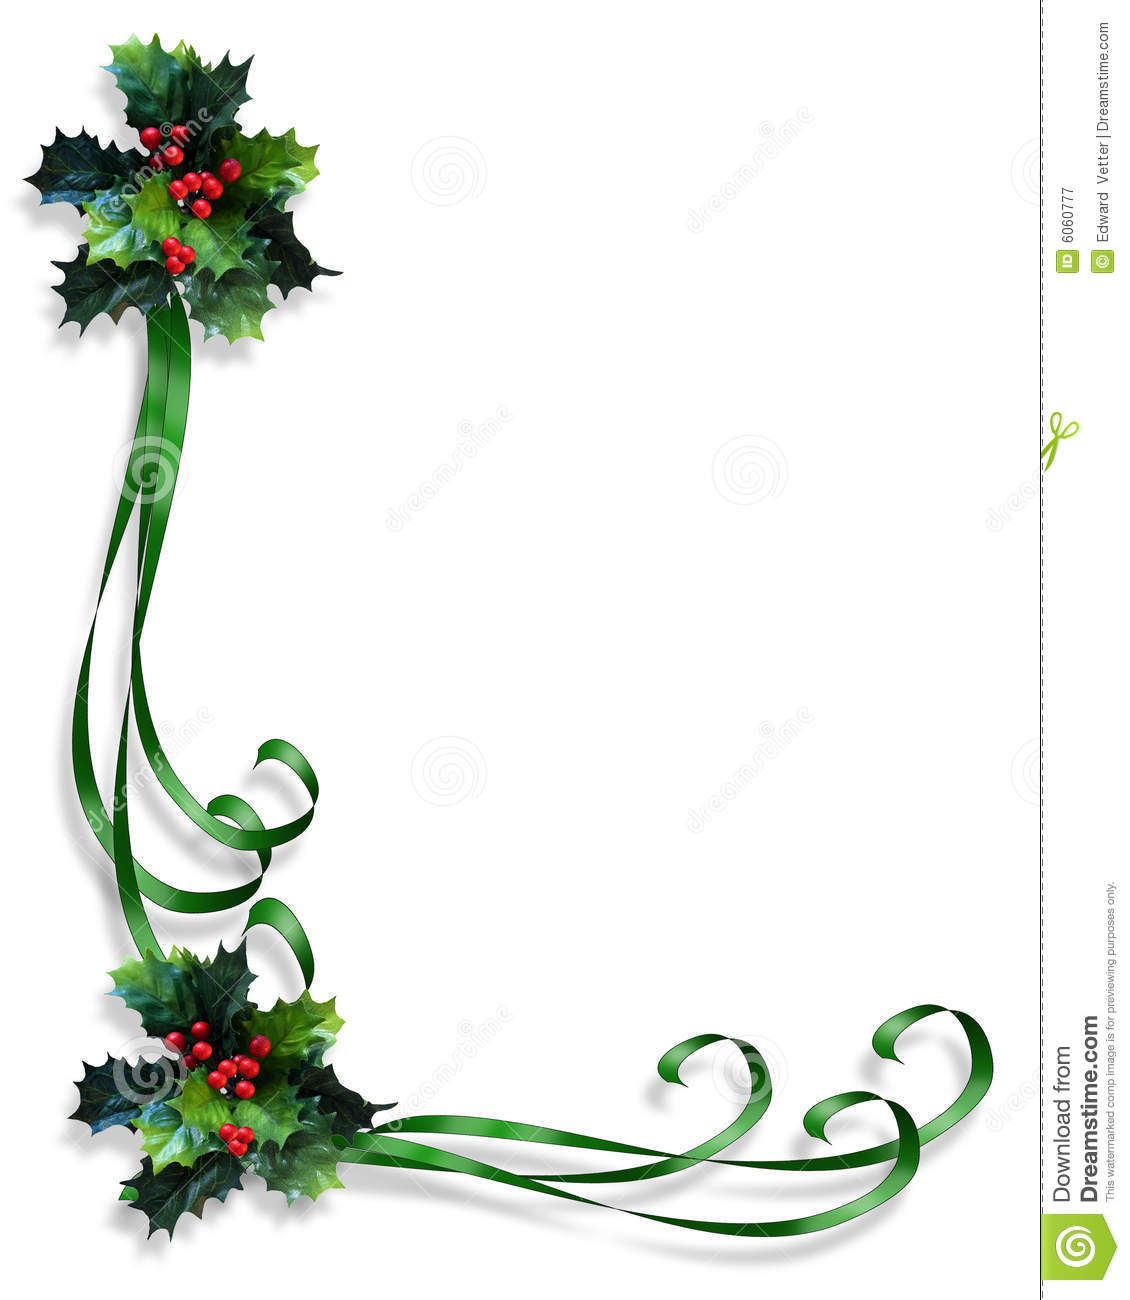 picture about Free Christmas Clipart Borders Printable known as absolutely free xmas clipart borders printable ; Xmas-Holly